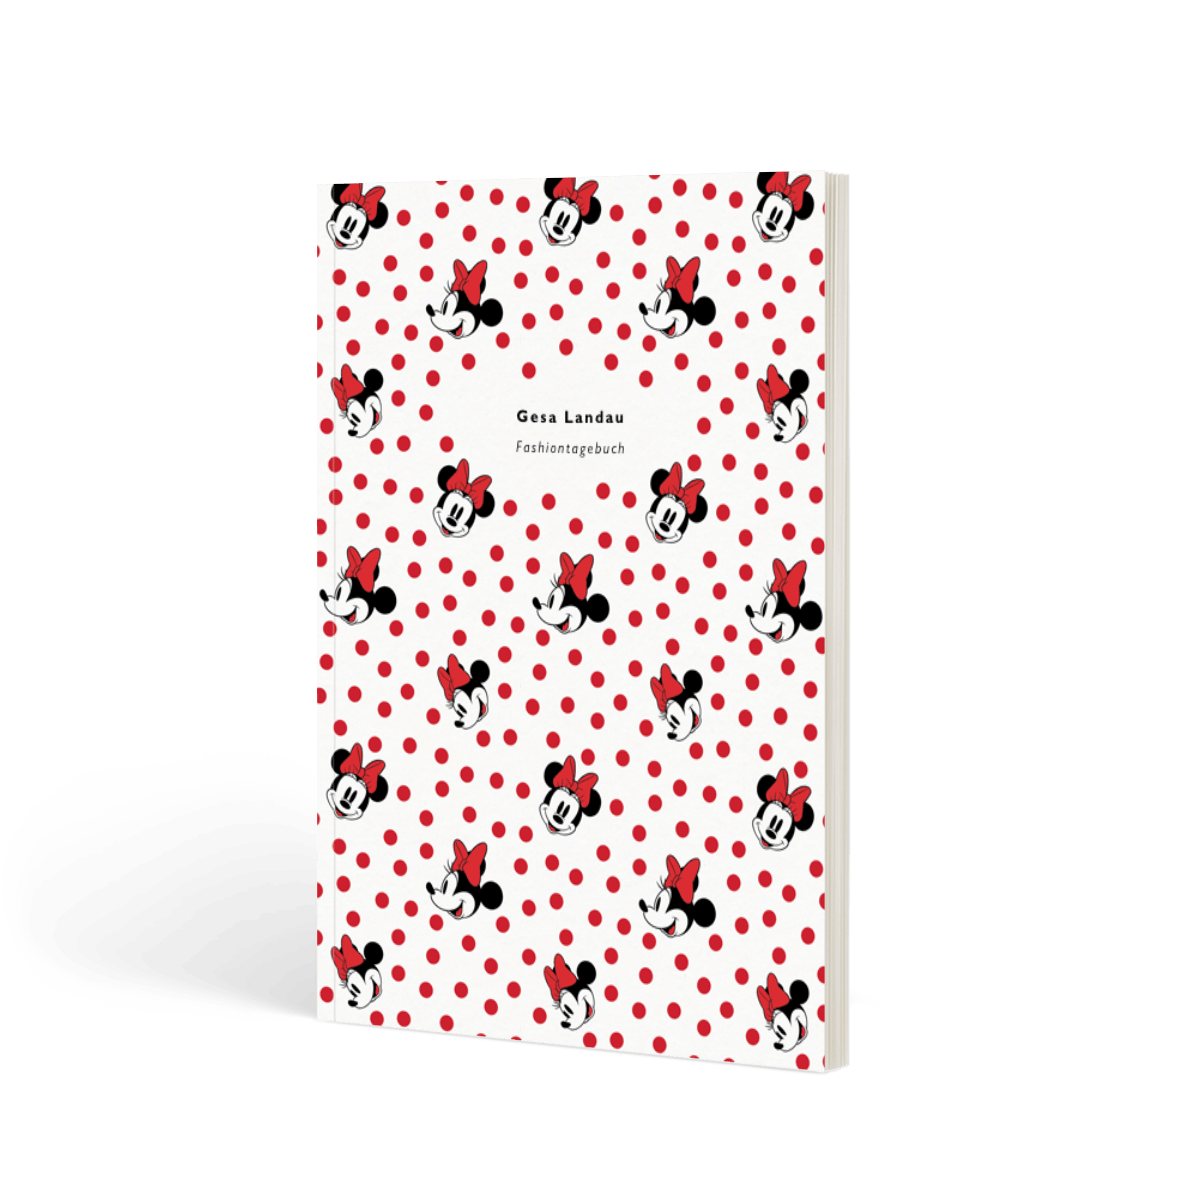 Https%3a%2f%2fwww.papier.com%2fproduct image%2f56027%2f6%2fminnie mouse 13461 vorderseite 1542369386.png?ixlib=rb 1.1